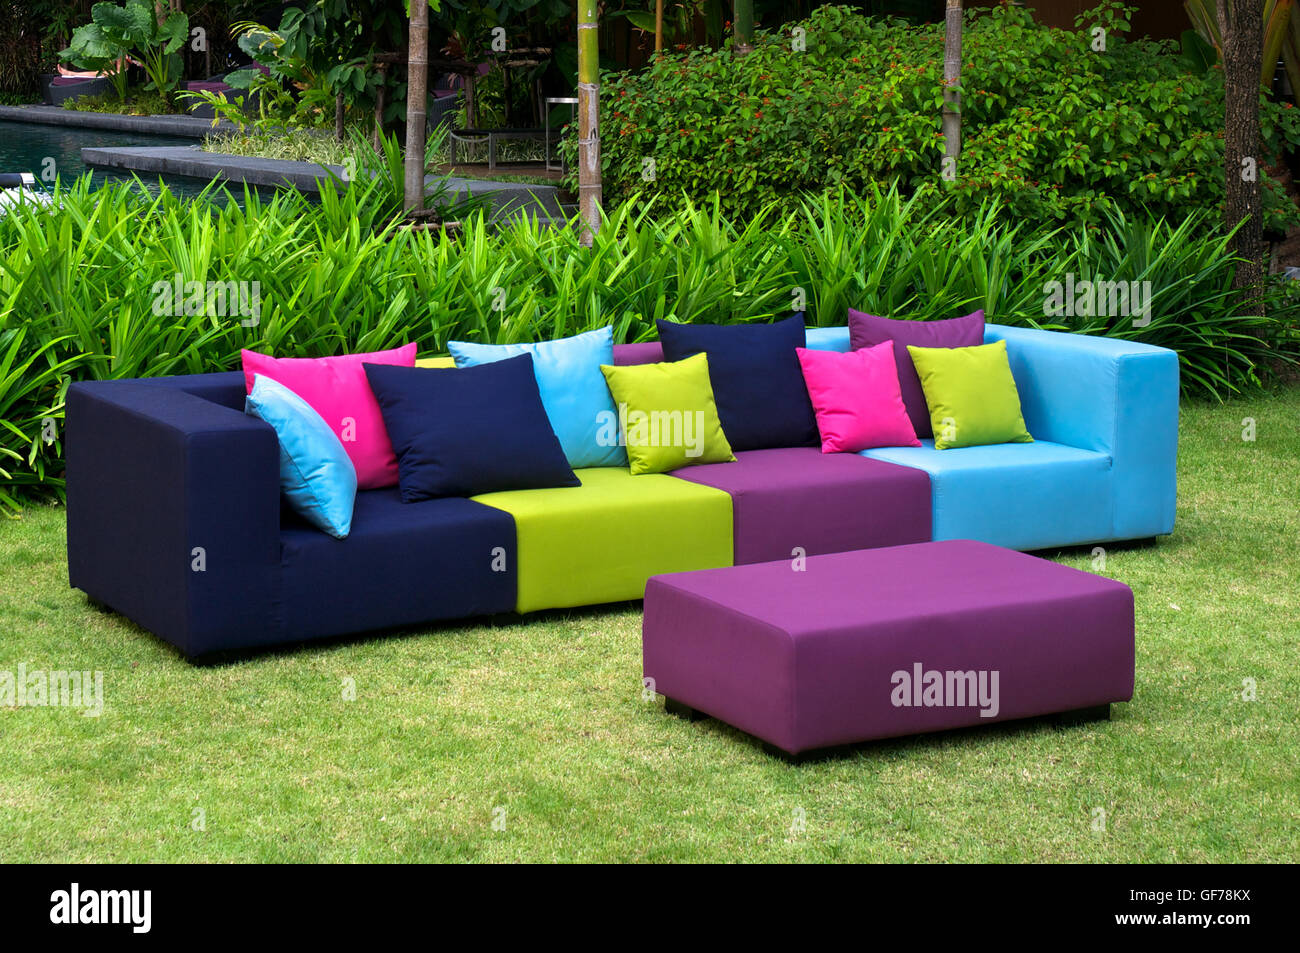 outdoor indoor sofa mit wasserdicht kissen stockfoto bild. Black Bedroom Furniture Sets. Home Design Ideas